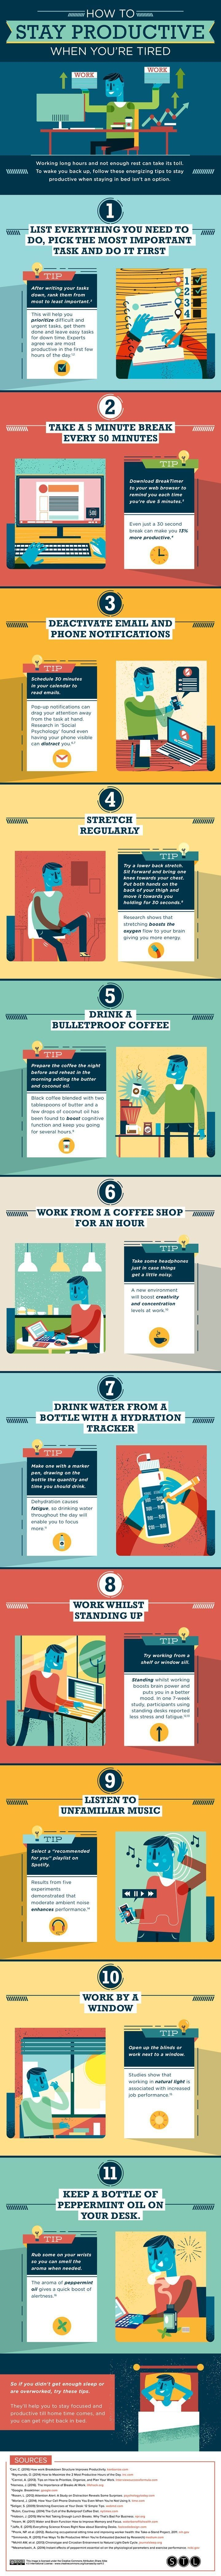 Productivity tips for small business owners, entrepreneurs, and bloggers! Wondering how to be productive all day? If you're on a deadline, the 11 tips on this infographic will help you stay productive when you're dragging! #entrepreneur #onlinebusiness #startup